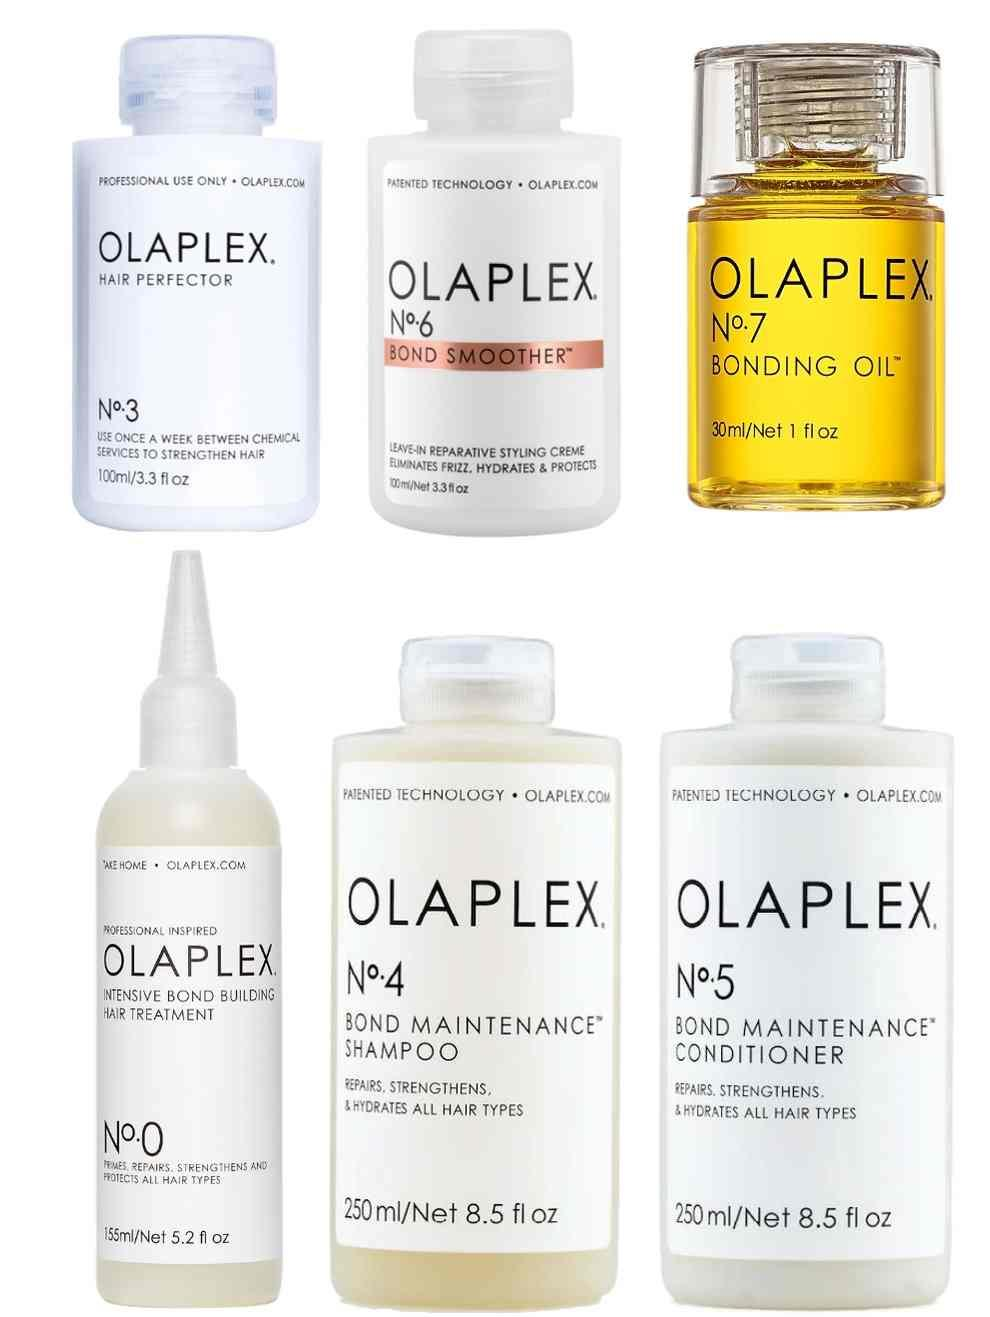 Olaplex Mega Collection Bundle (No. 0, 3, 4, 5, 6, 7)